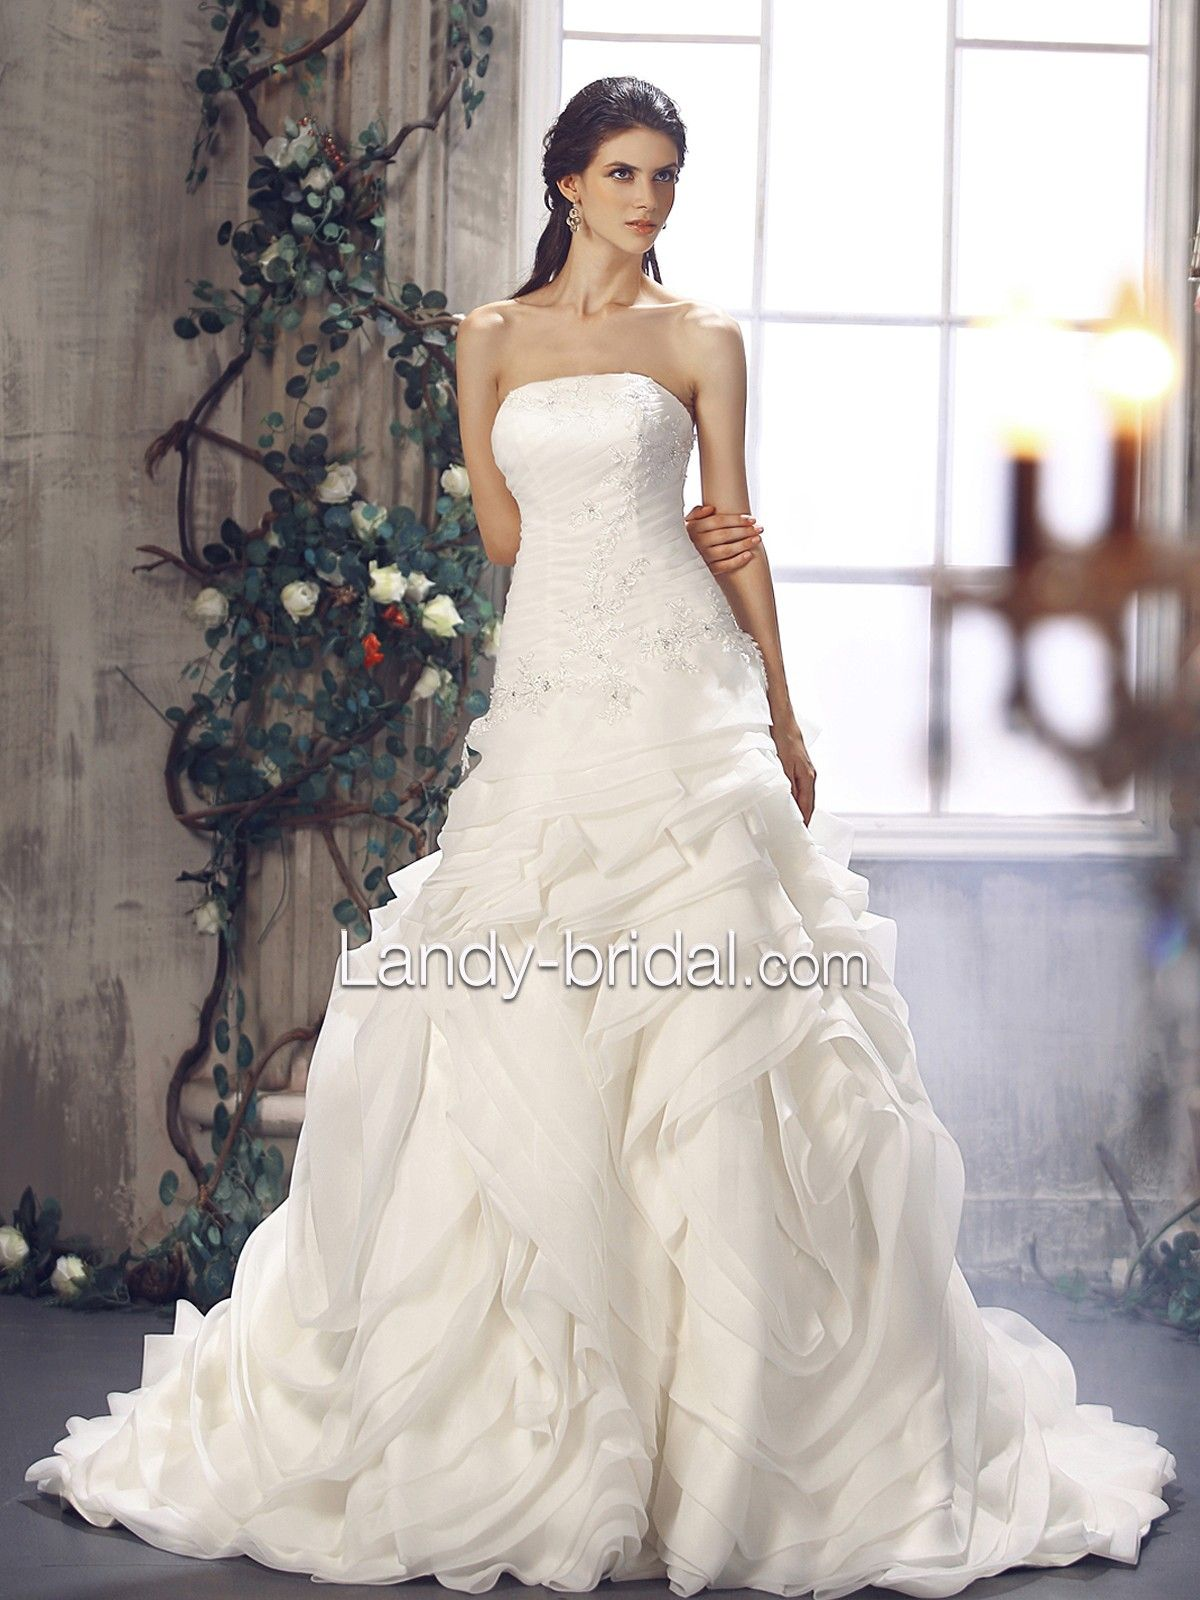 Wedding Dresses Yahoo Image Search Results